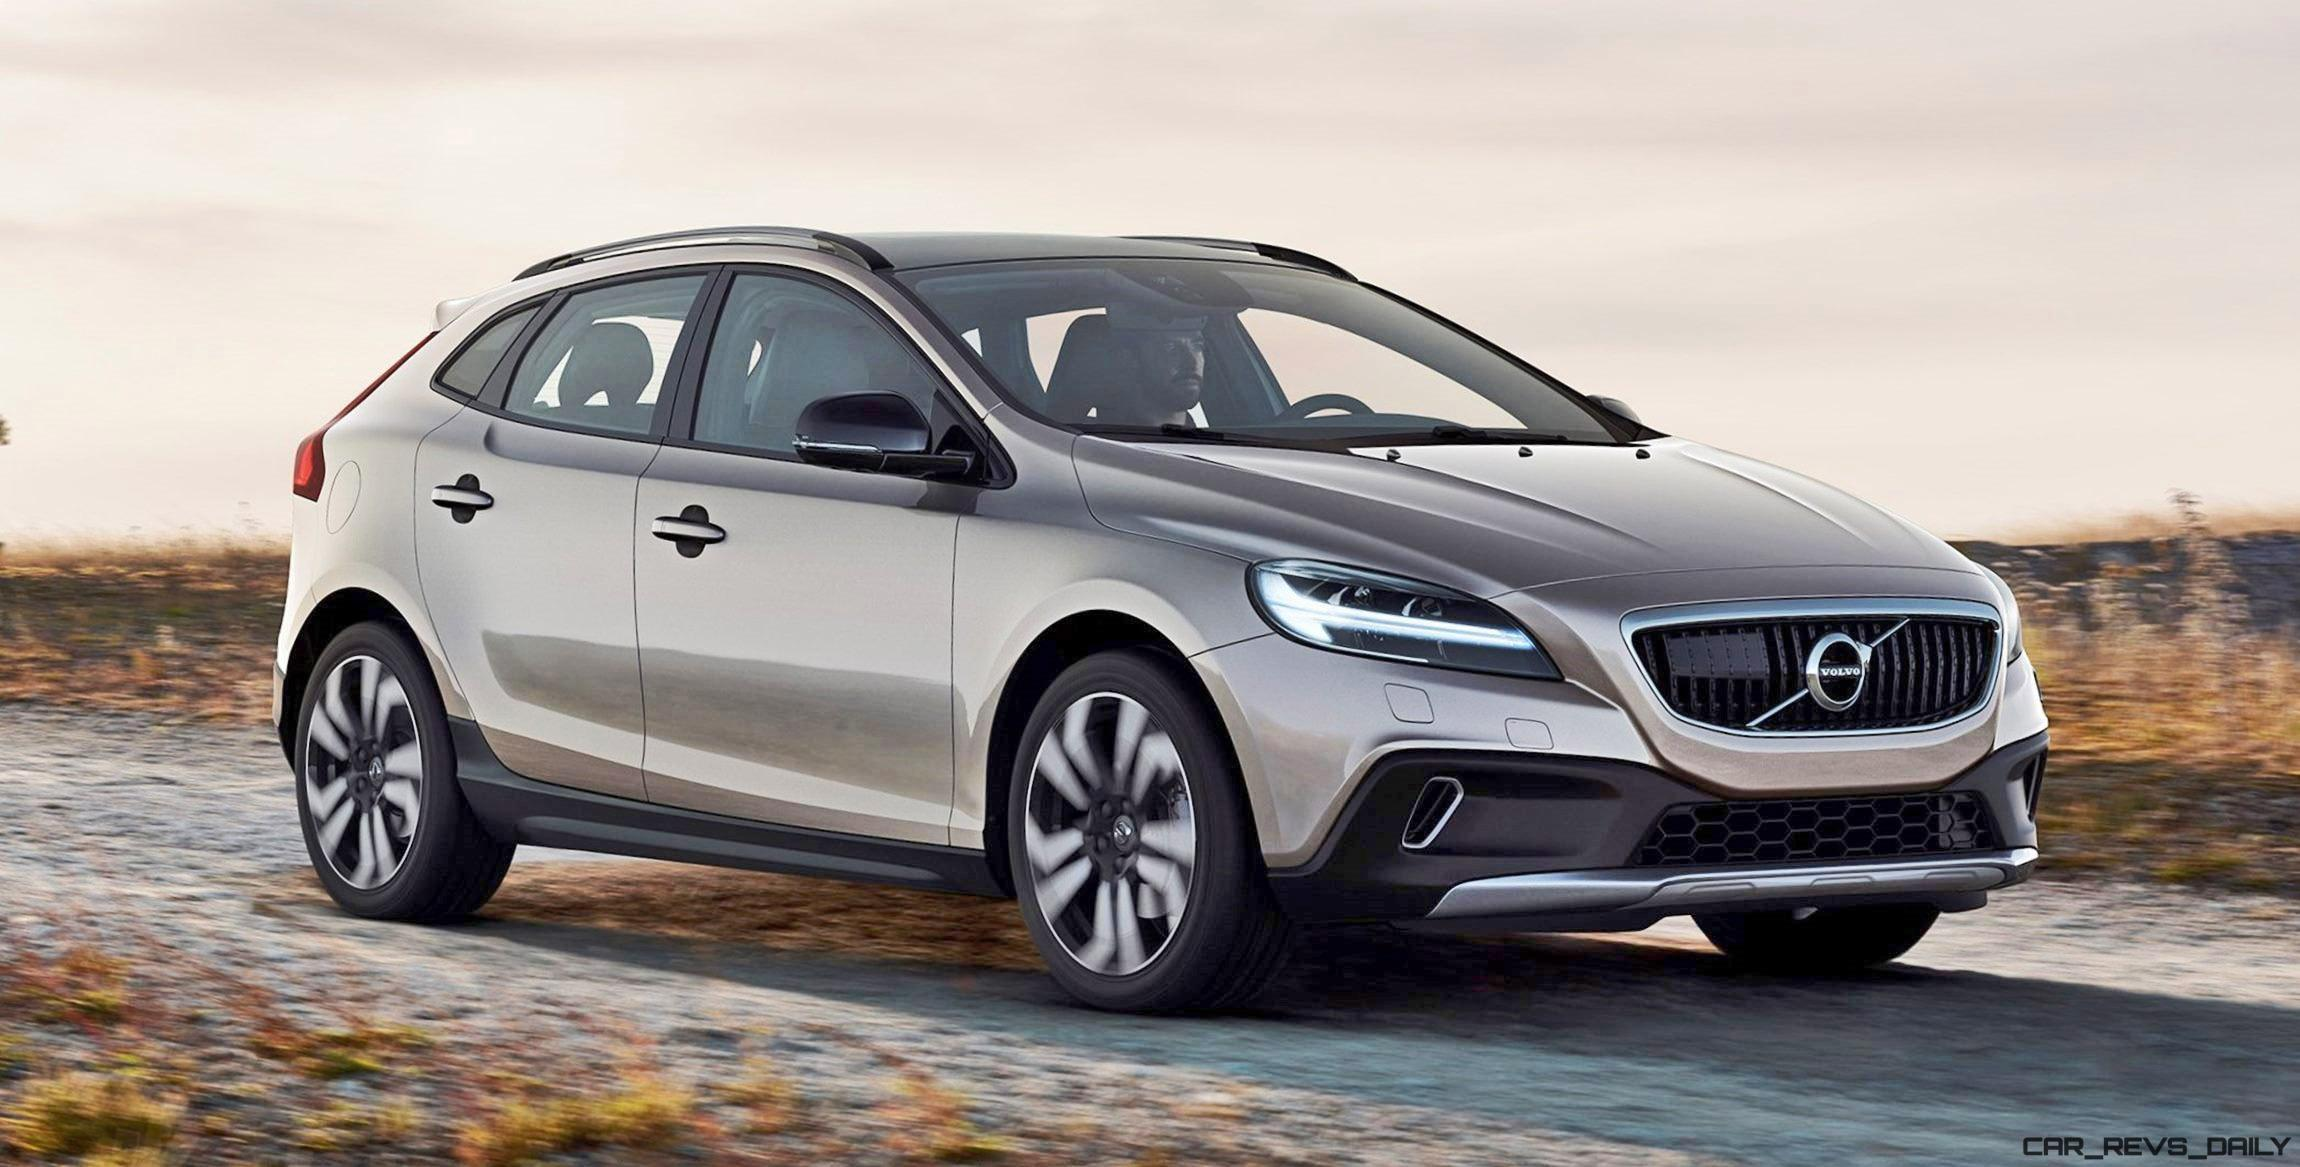 2017 Volvo V40 And V40 Cross Country Facelift Revealed